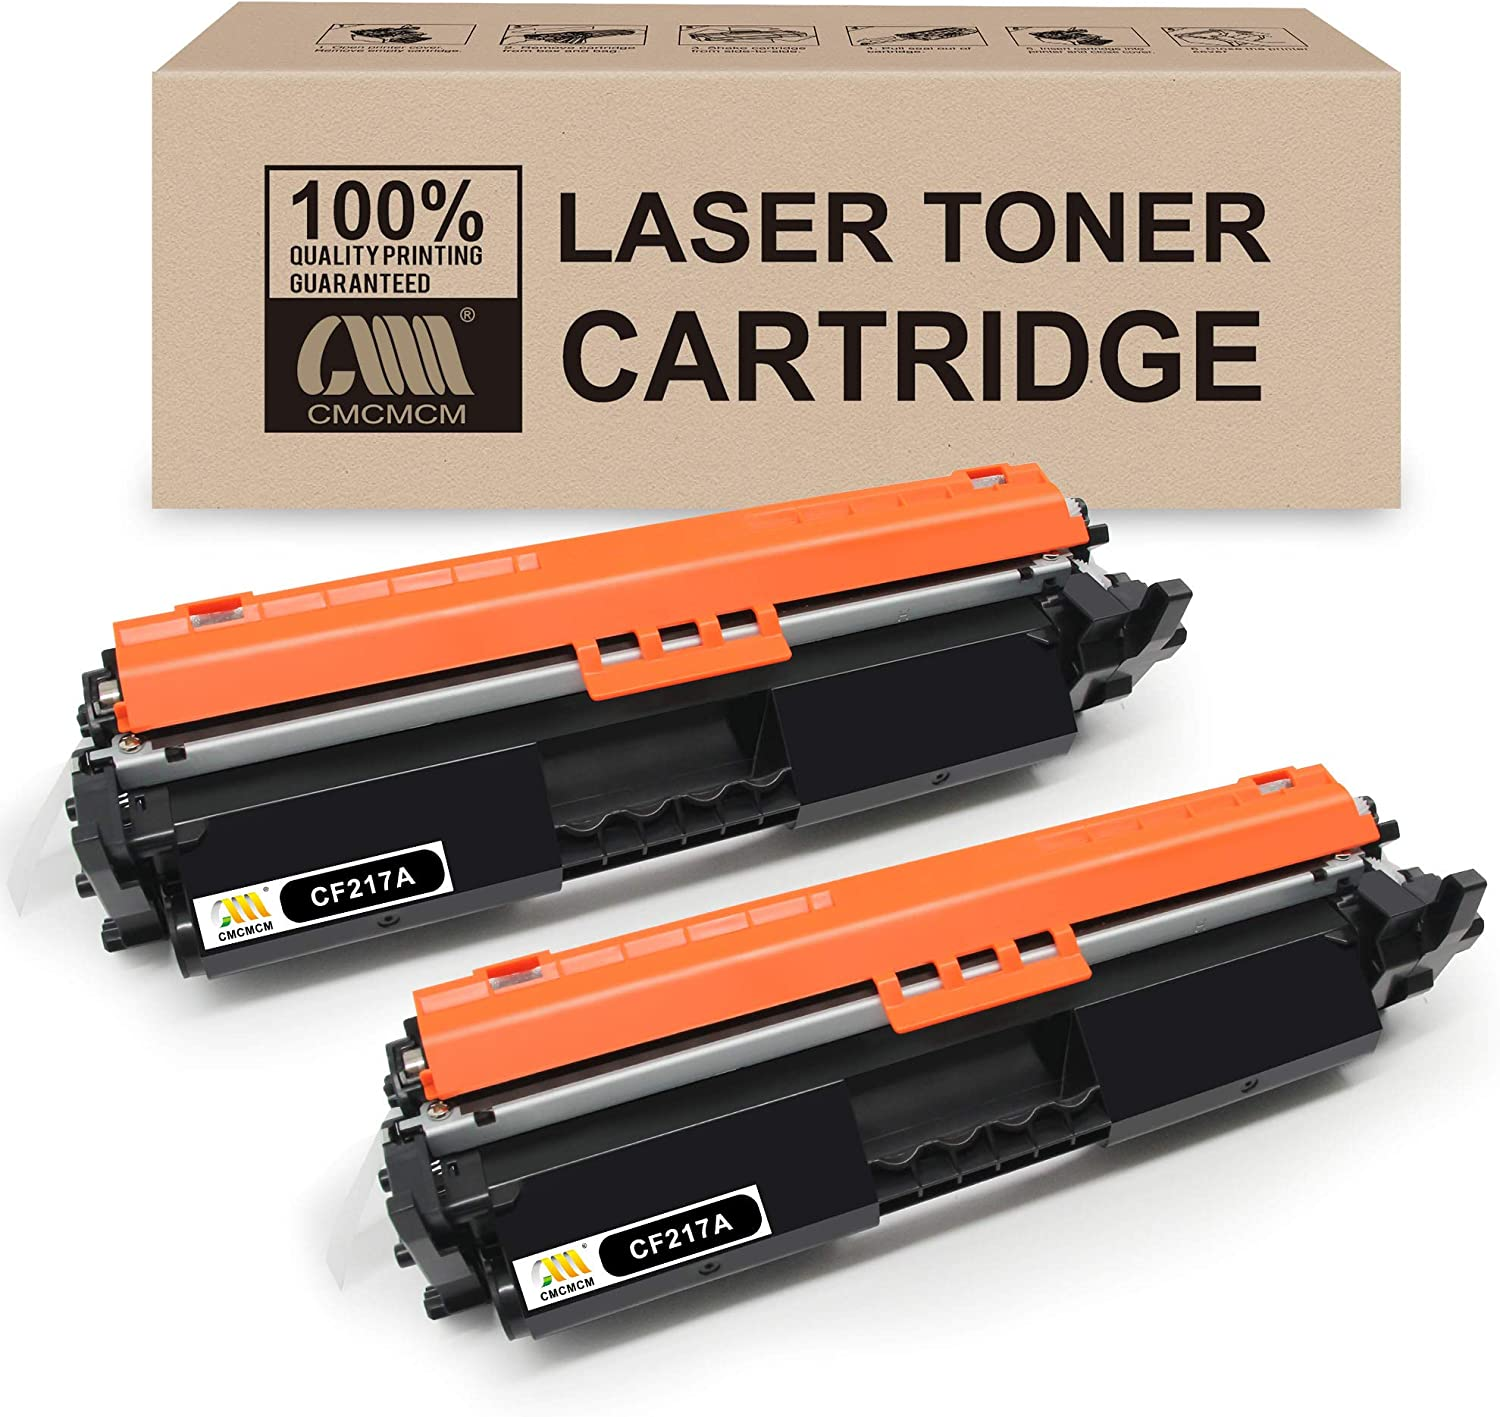 CMCMCM 2PK Compatible Toner Cartridge Replacements for HP 17A CF217A Work with Laserjet Pro MFP M102w M130nw M130fn M130fw M102a M130a M102 M130 Printer